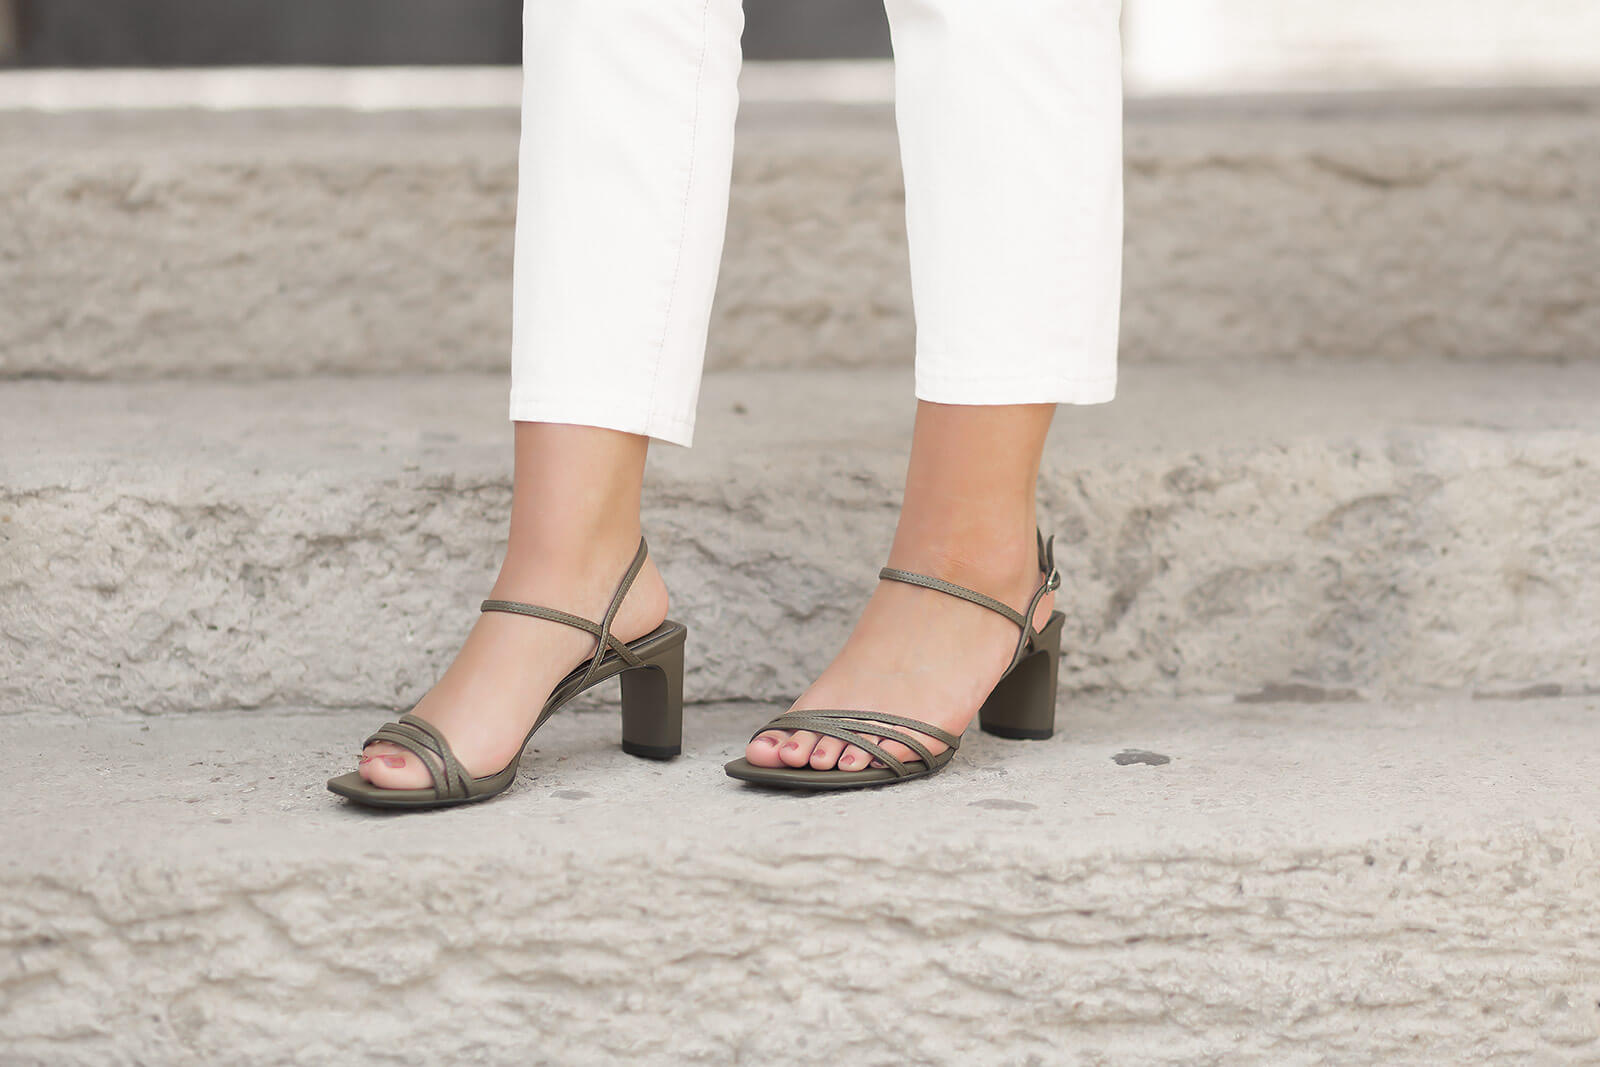 Sandalen Trends 2020, Riemchensandalen, Strappy Sandals, Shoelove by Deichmann